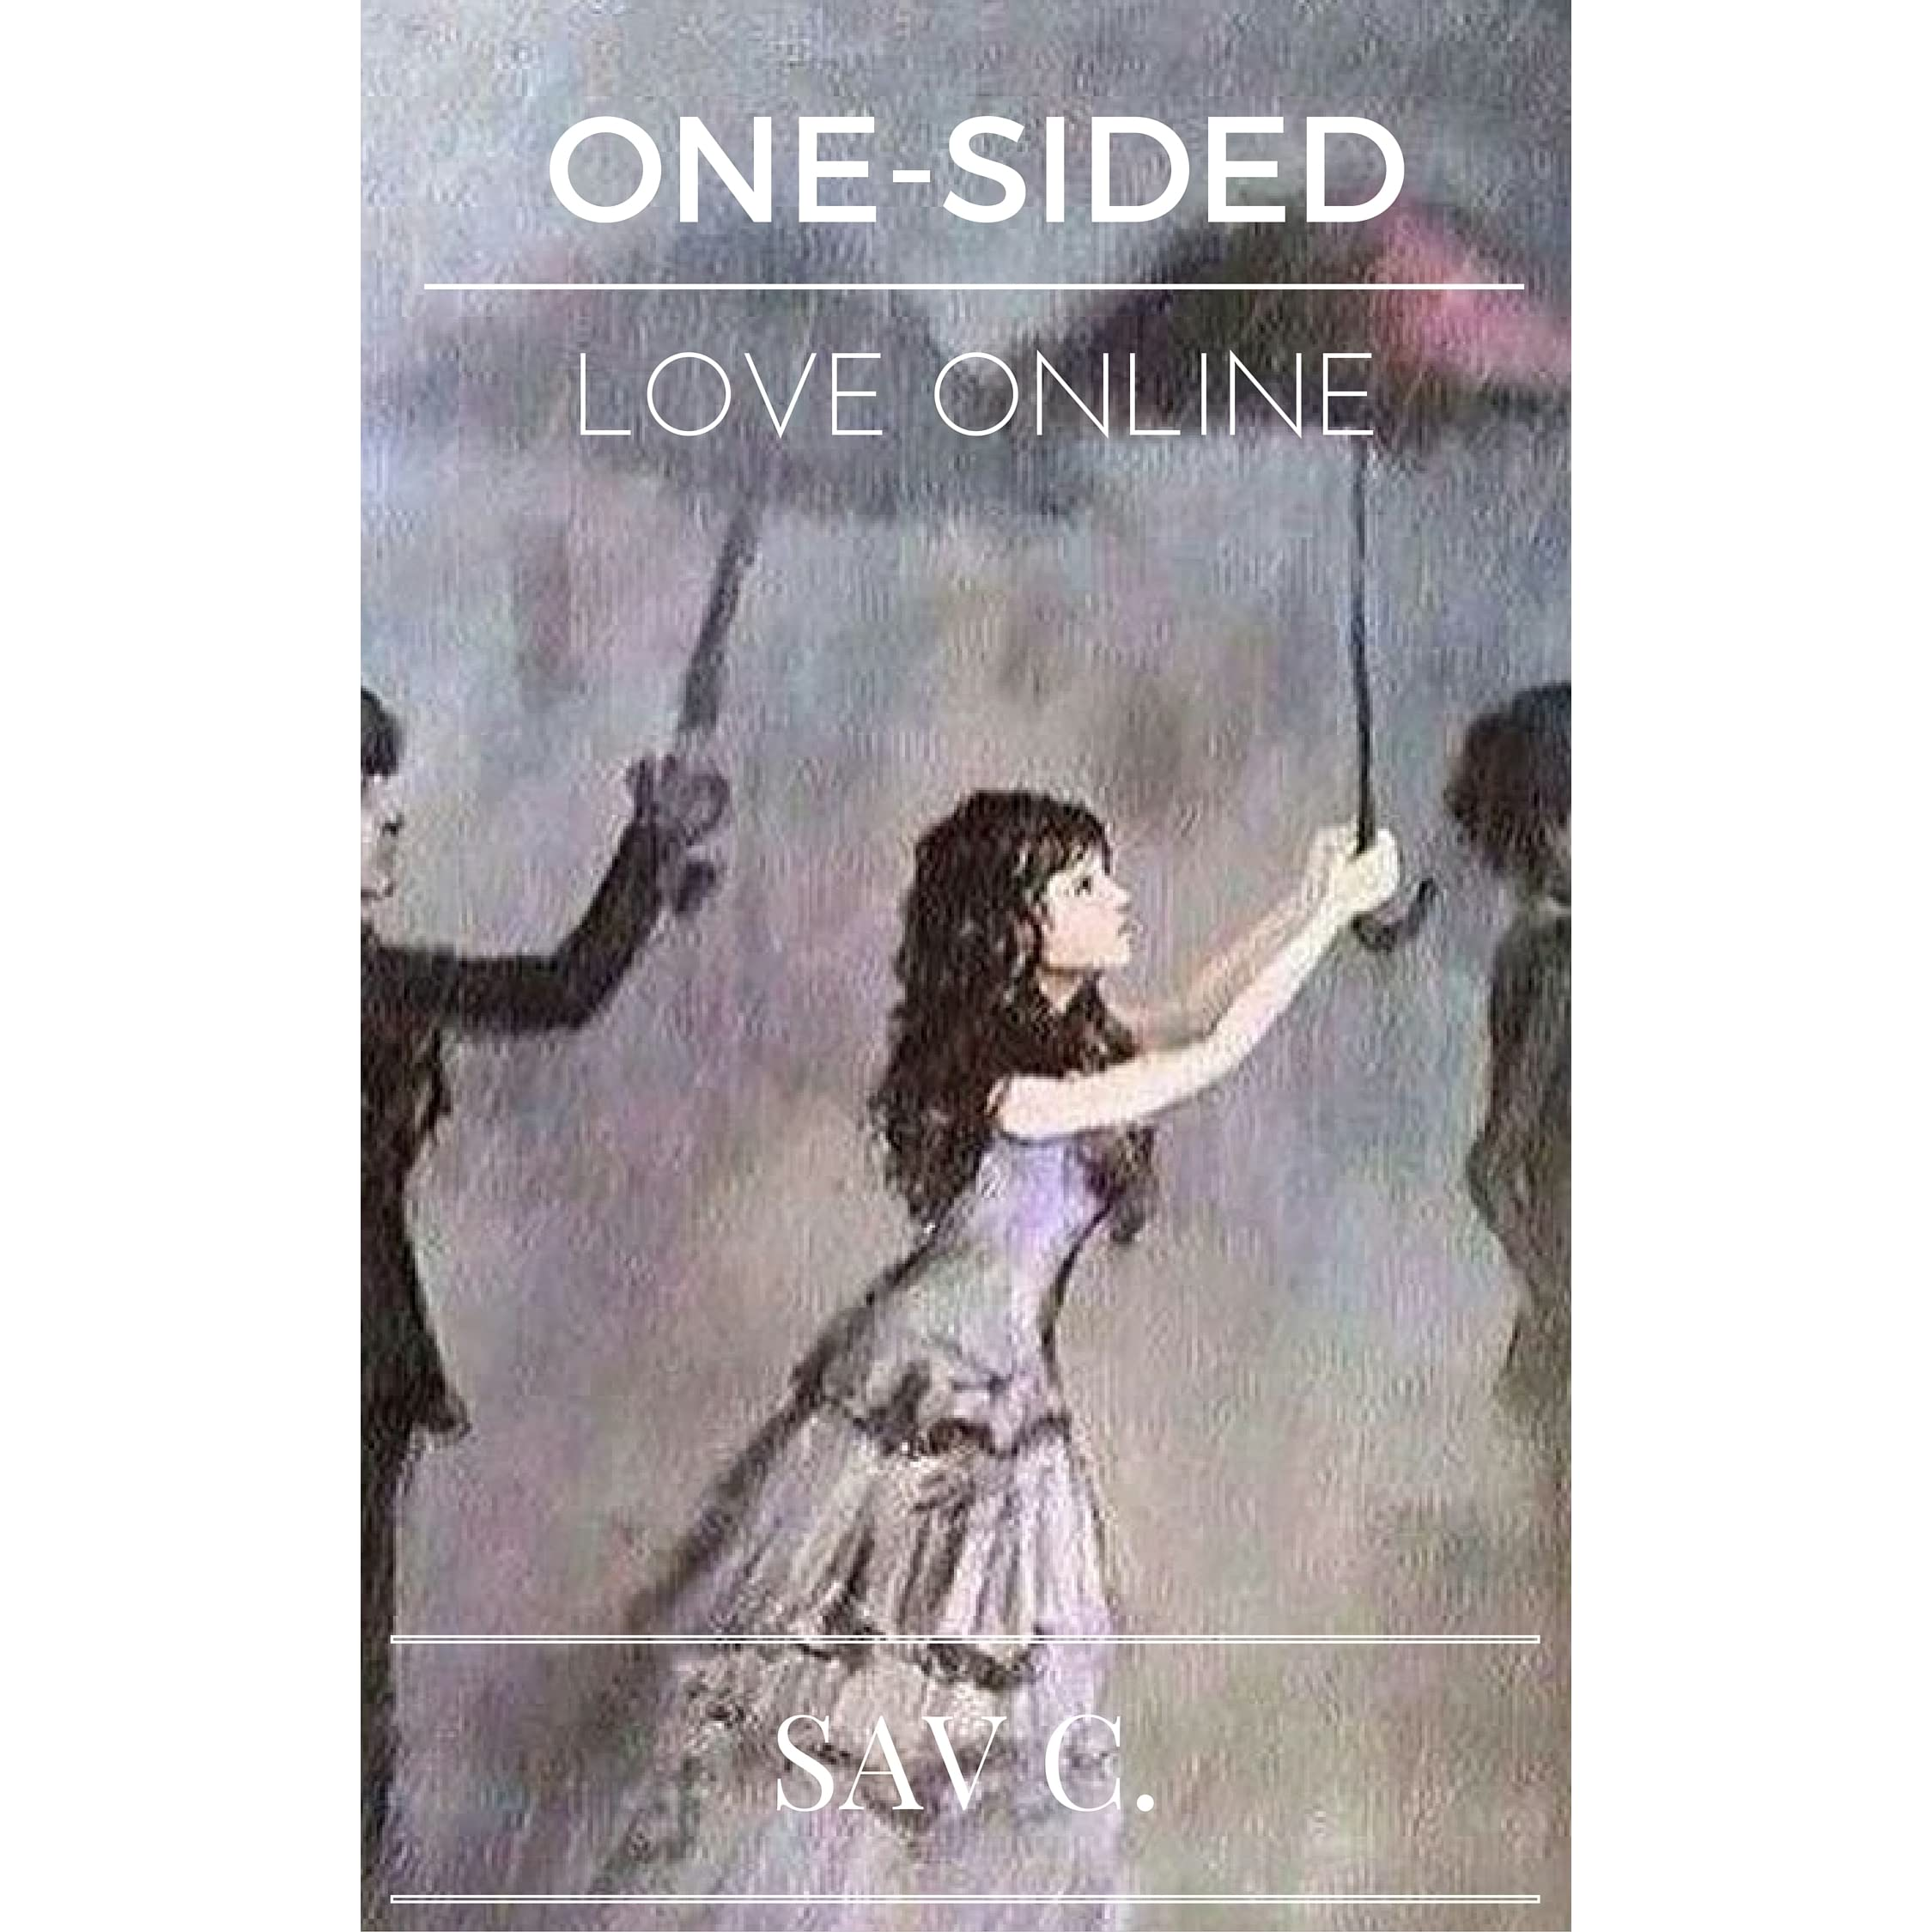 One sided love poems in english